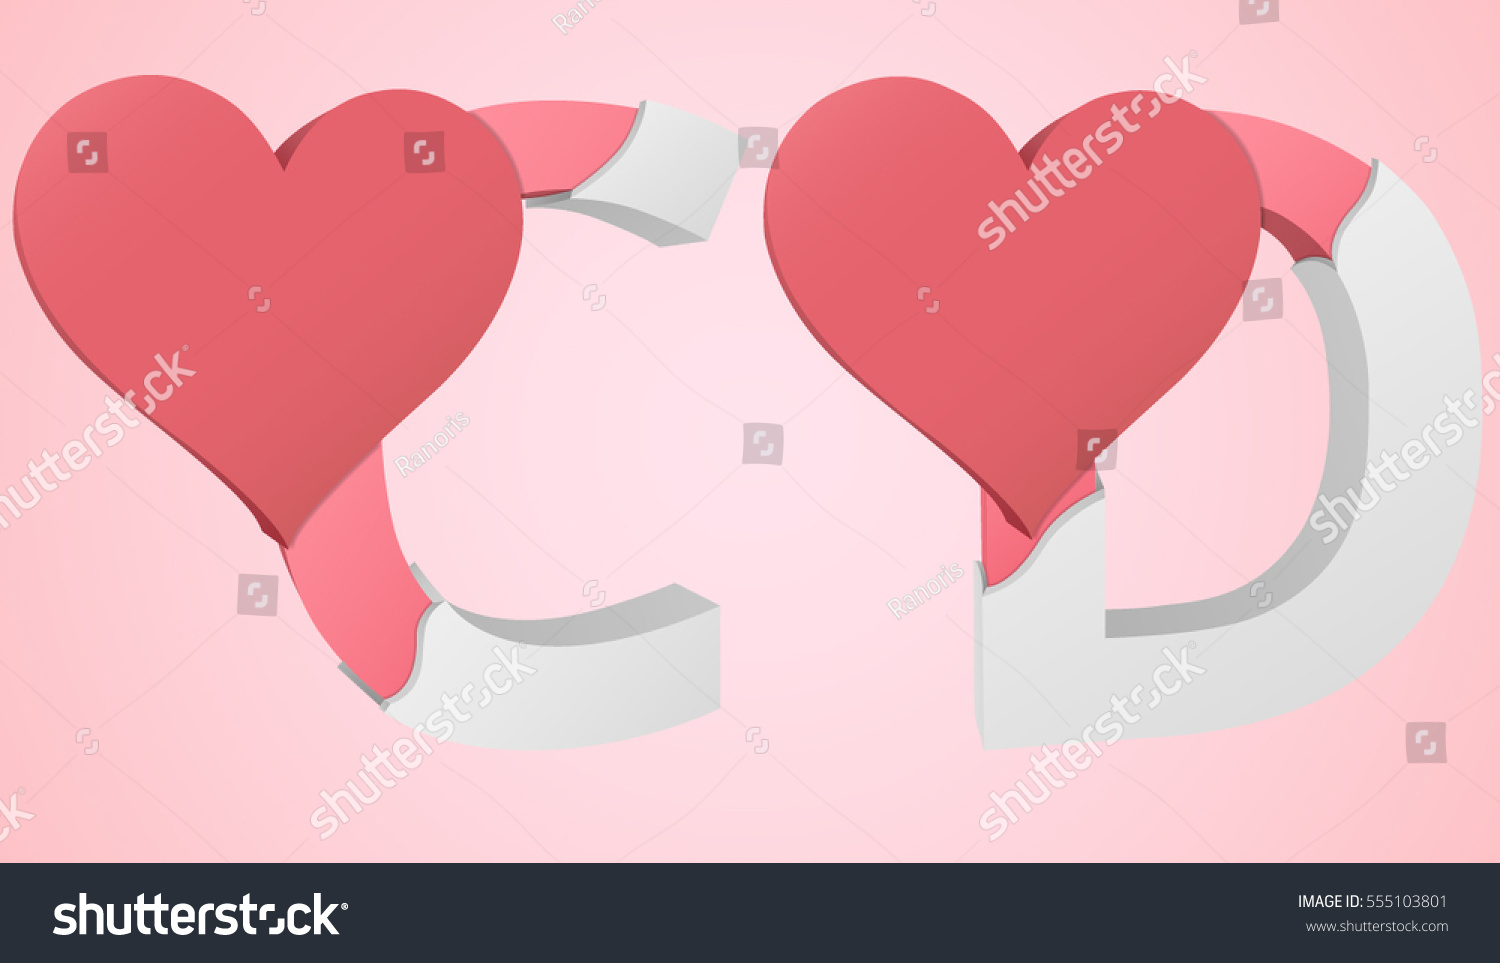 Letters C D Color Pink Inside Stock Vector (Royalty Free) 555103801 ...